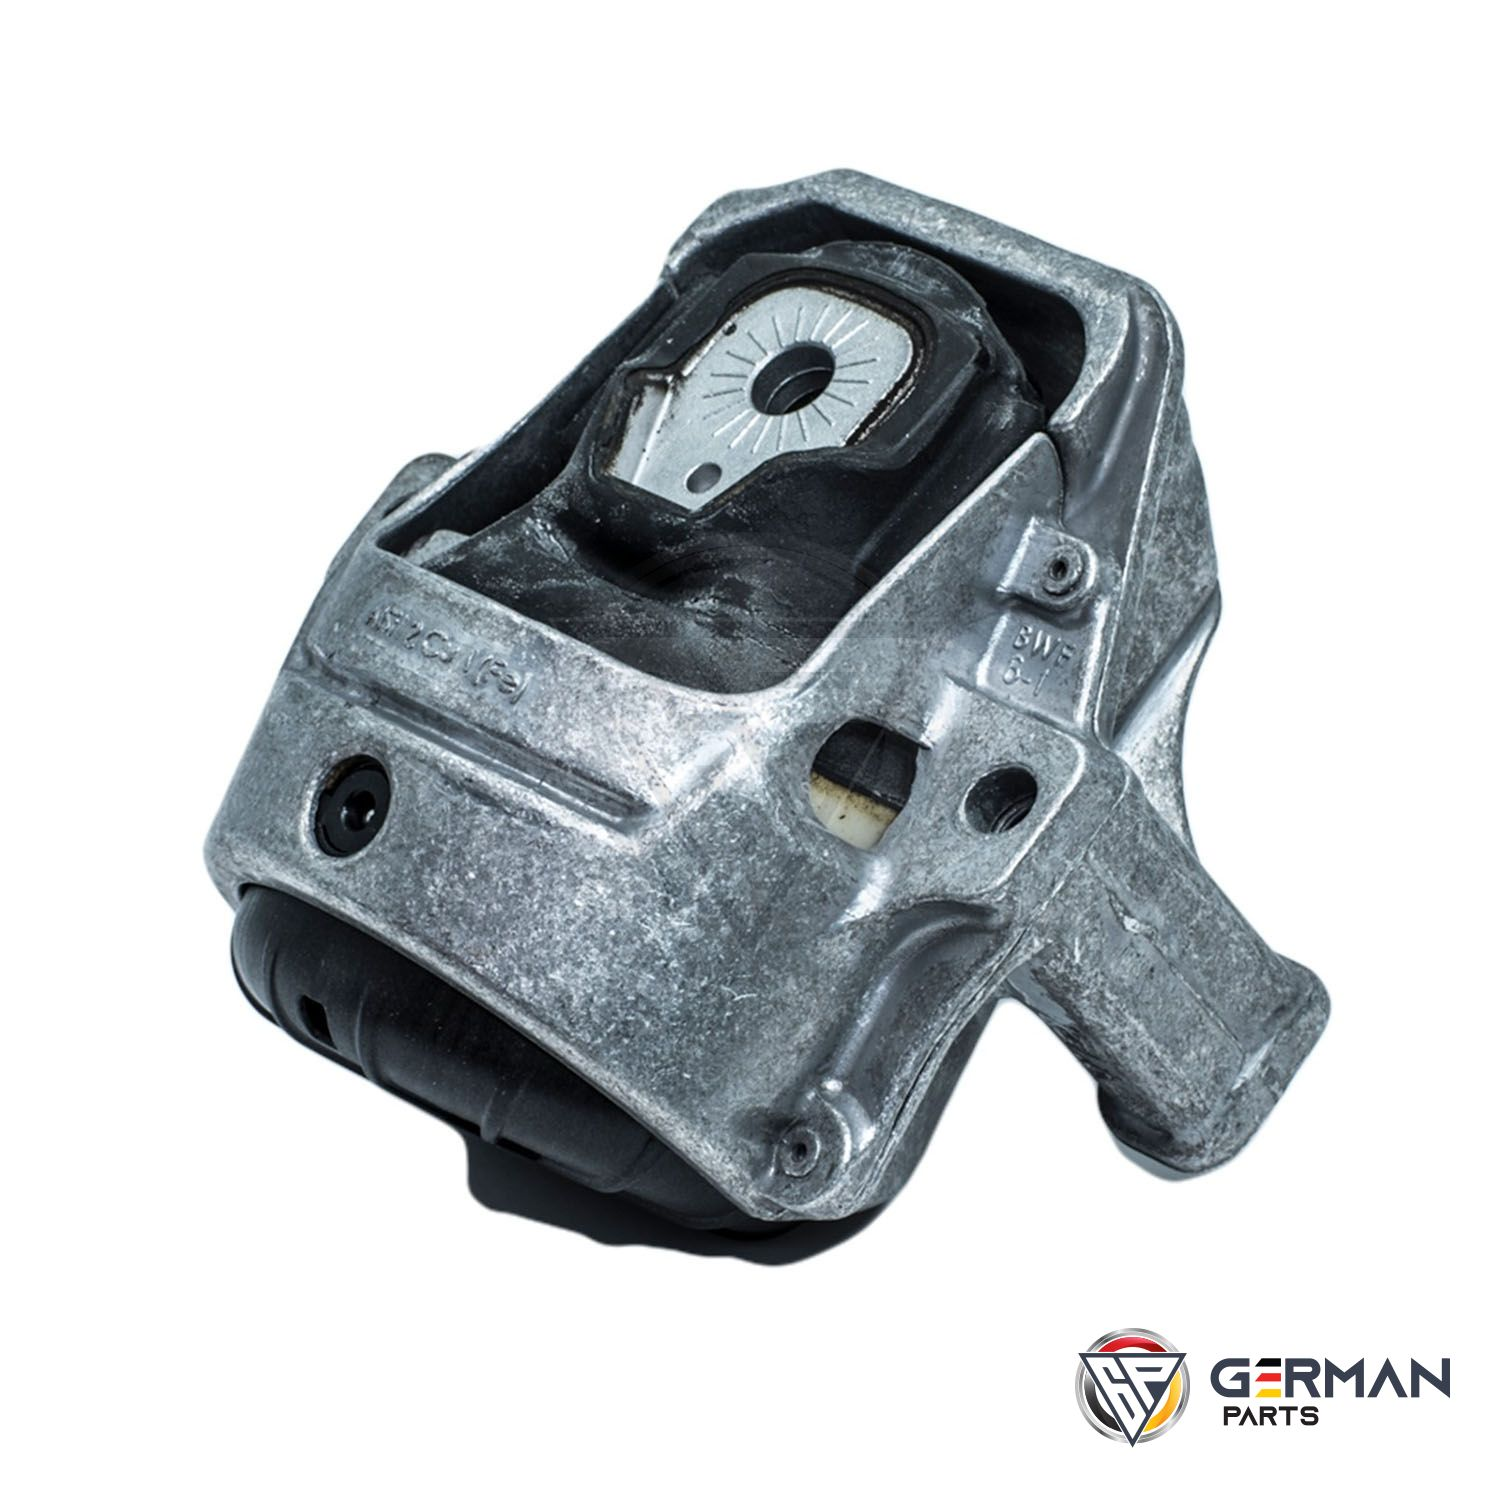 Buy Lemforder Engine Mounting 8R0199381AL - German Parts